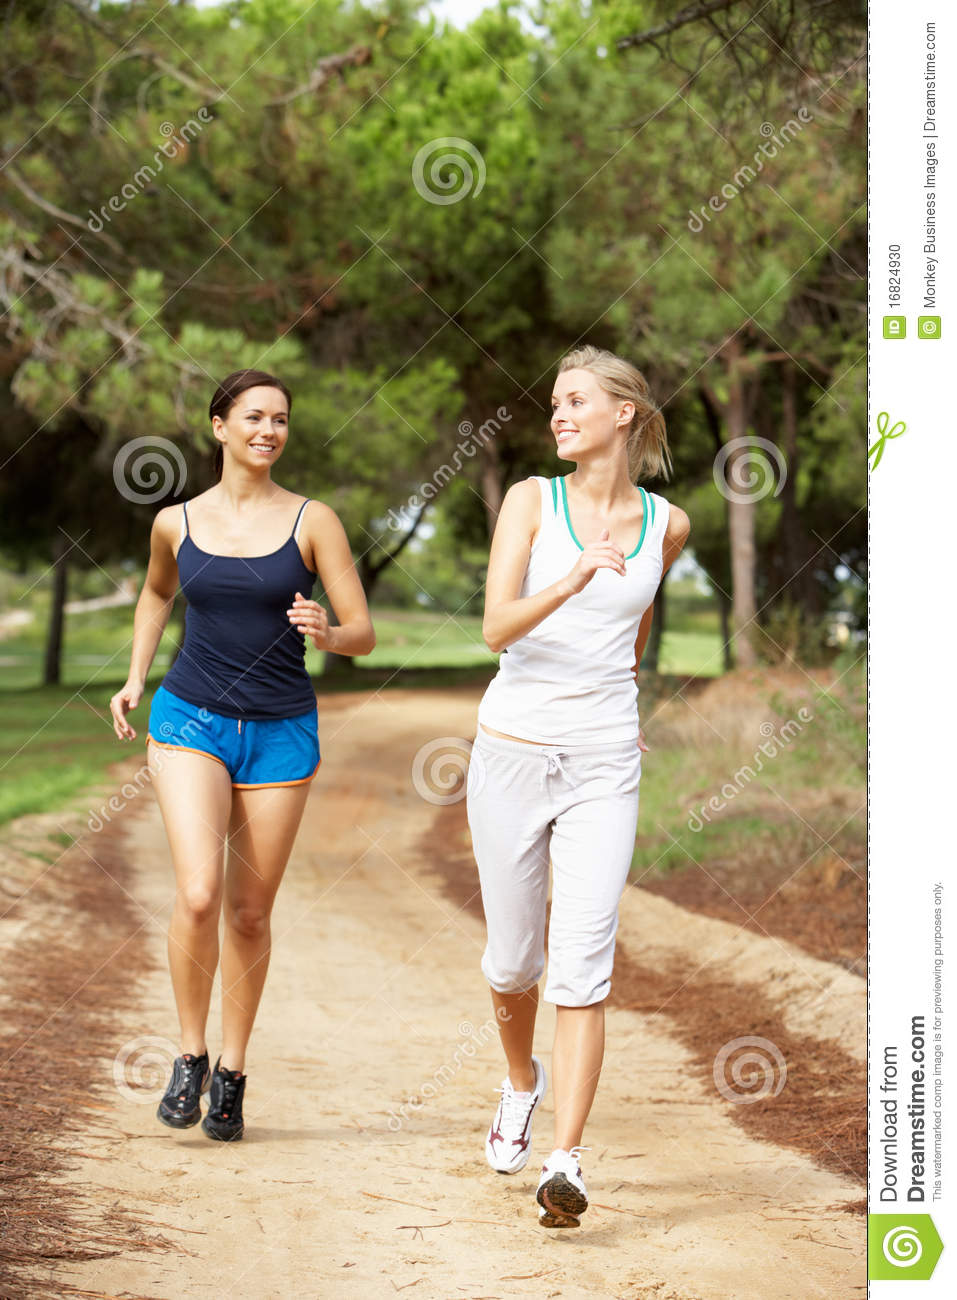 ceb2ec4b8b Two Young Women Running In Park Stock Photo - Image of outdoors ...